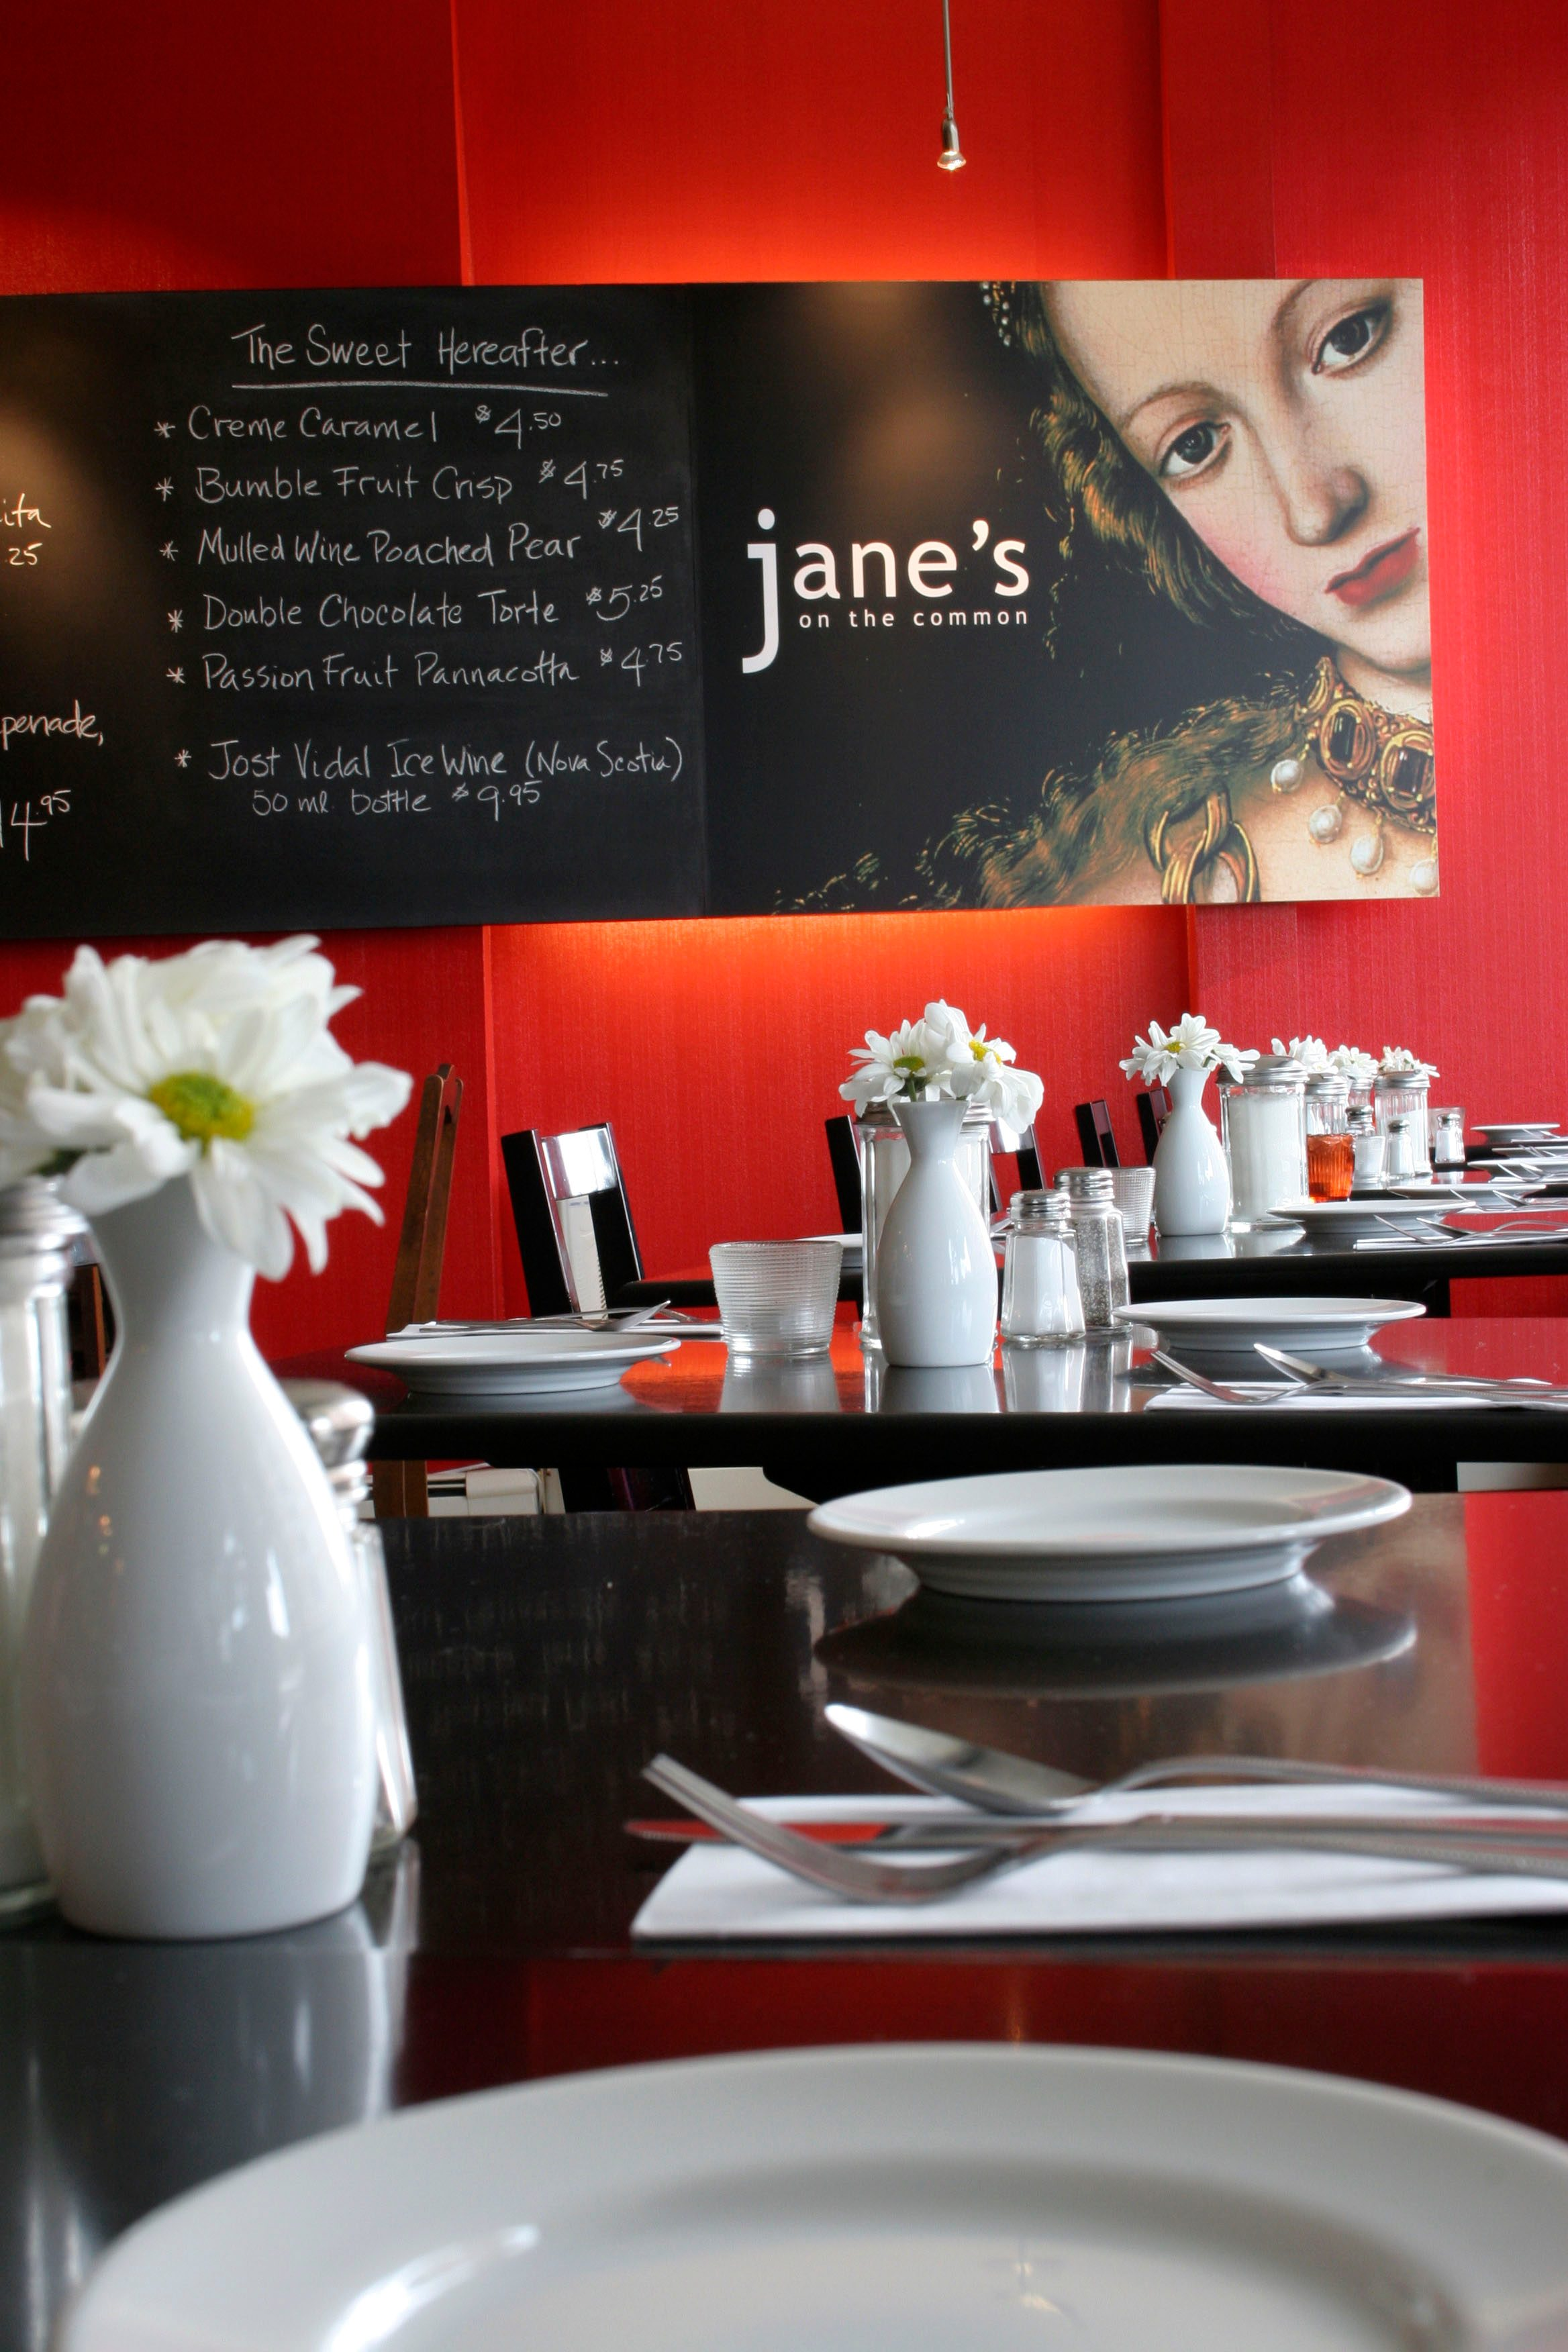 Canada's healthiest restaurants: Jane's on the Common